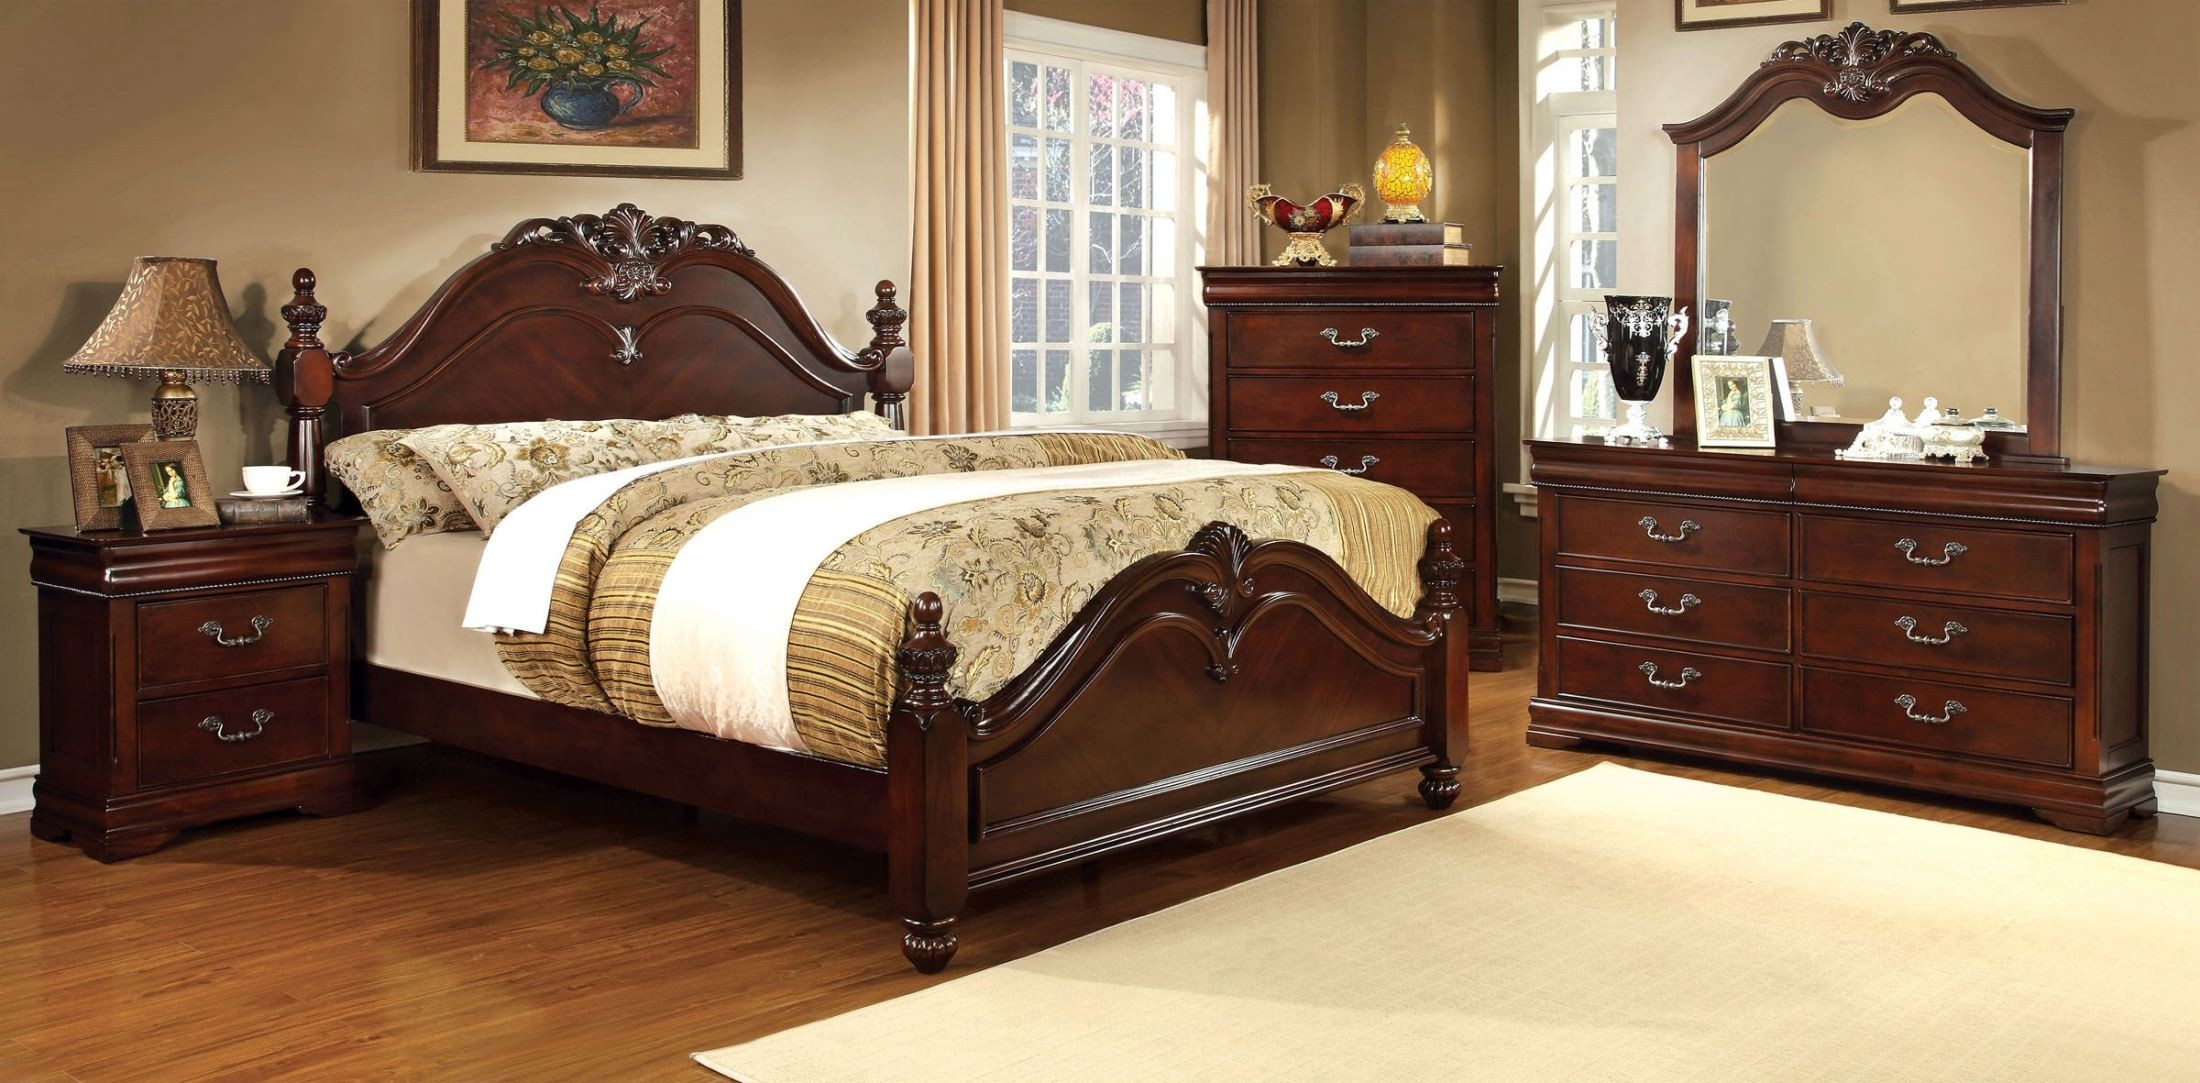 Mandura Cherry Cal King Poster Bed From Furniture Of